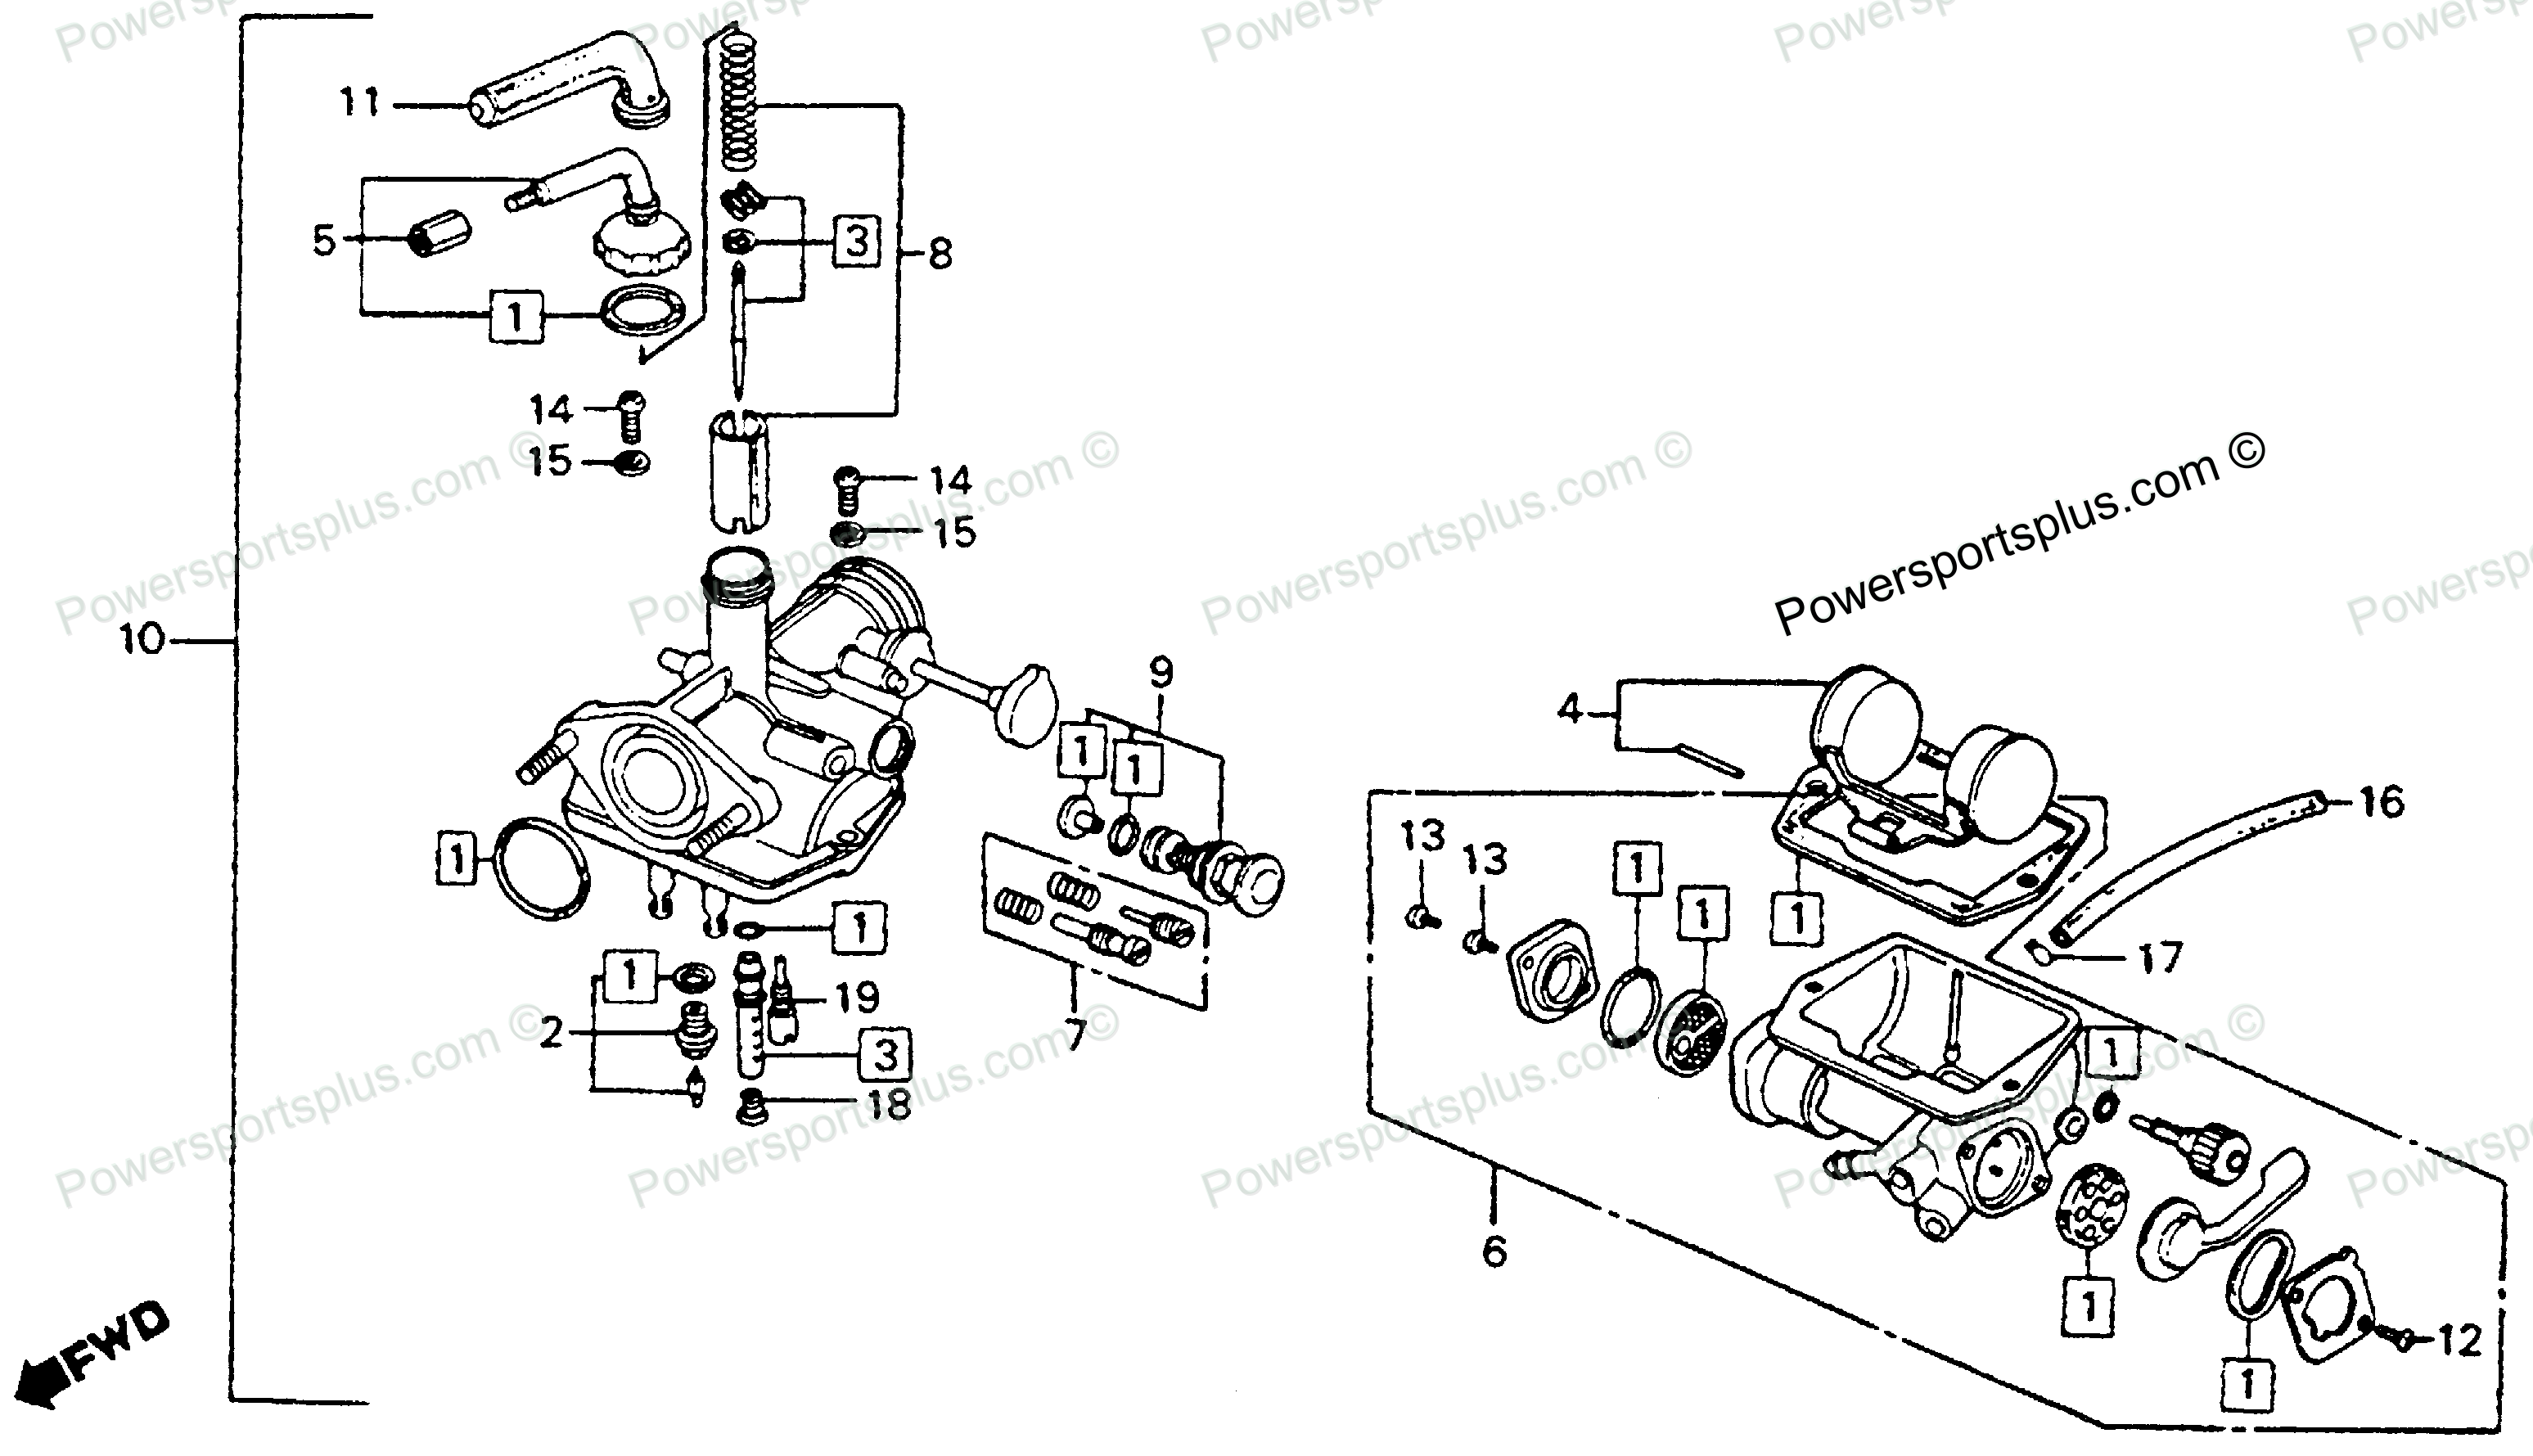 1976 Honda Cb750 Wiring Diagram. Honda. Auto Fuse Box Diagram